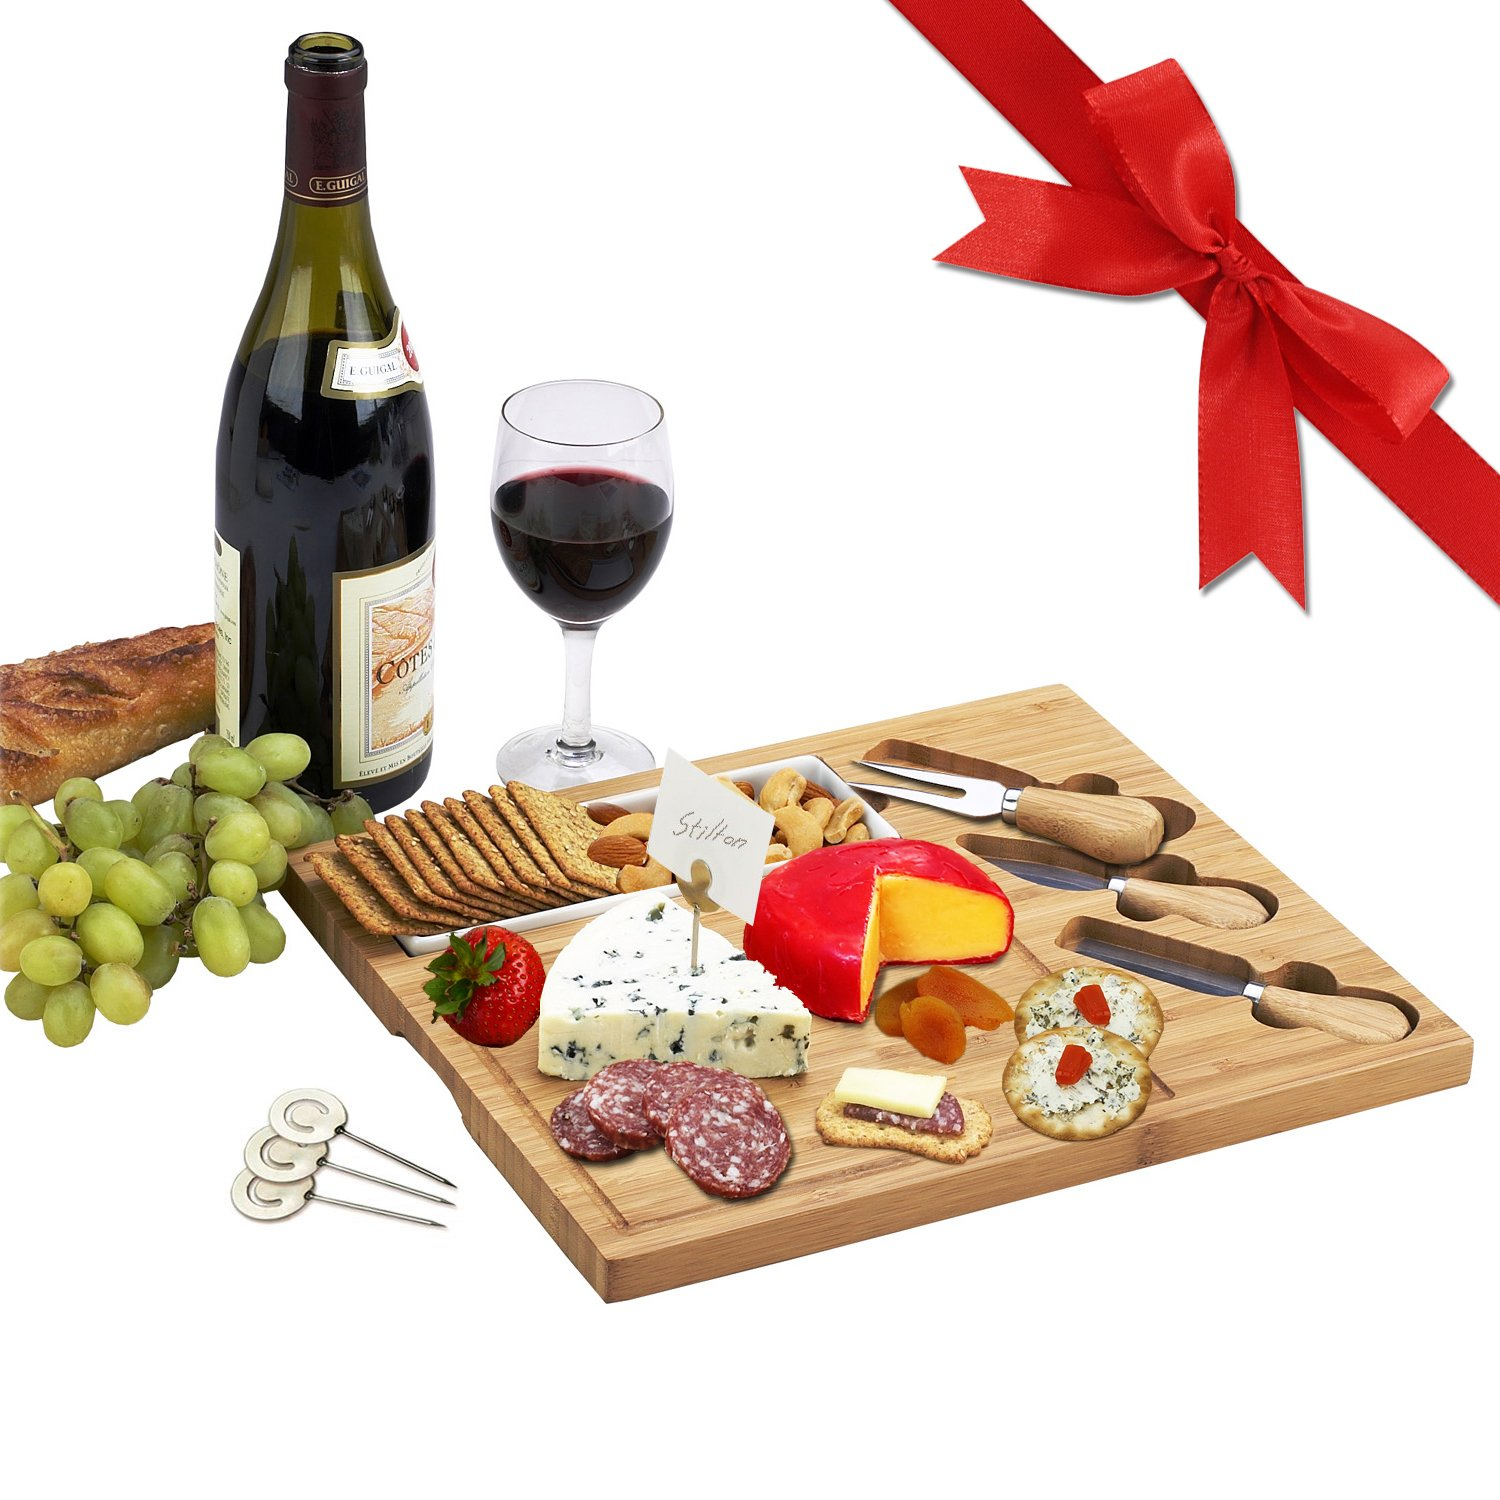 Picnic at Ascot Bamboo Cheese Board/Charcuterie Plate with 3 Stainless Steel Cheese Tools, Ceramic Dish, and Markers - 13'' x 11'' - Designed & Quality Checked in the USA